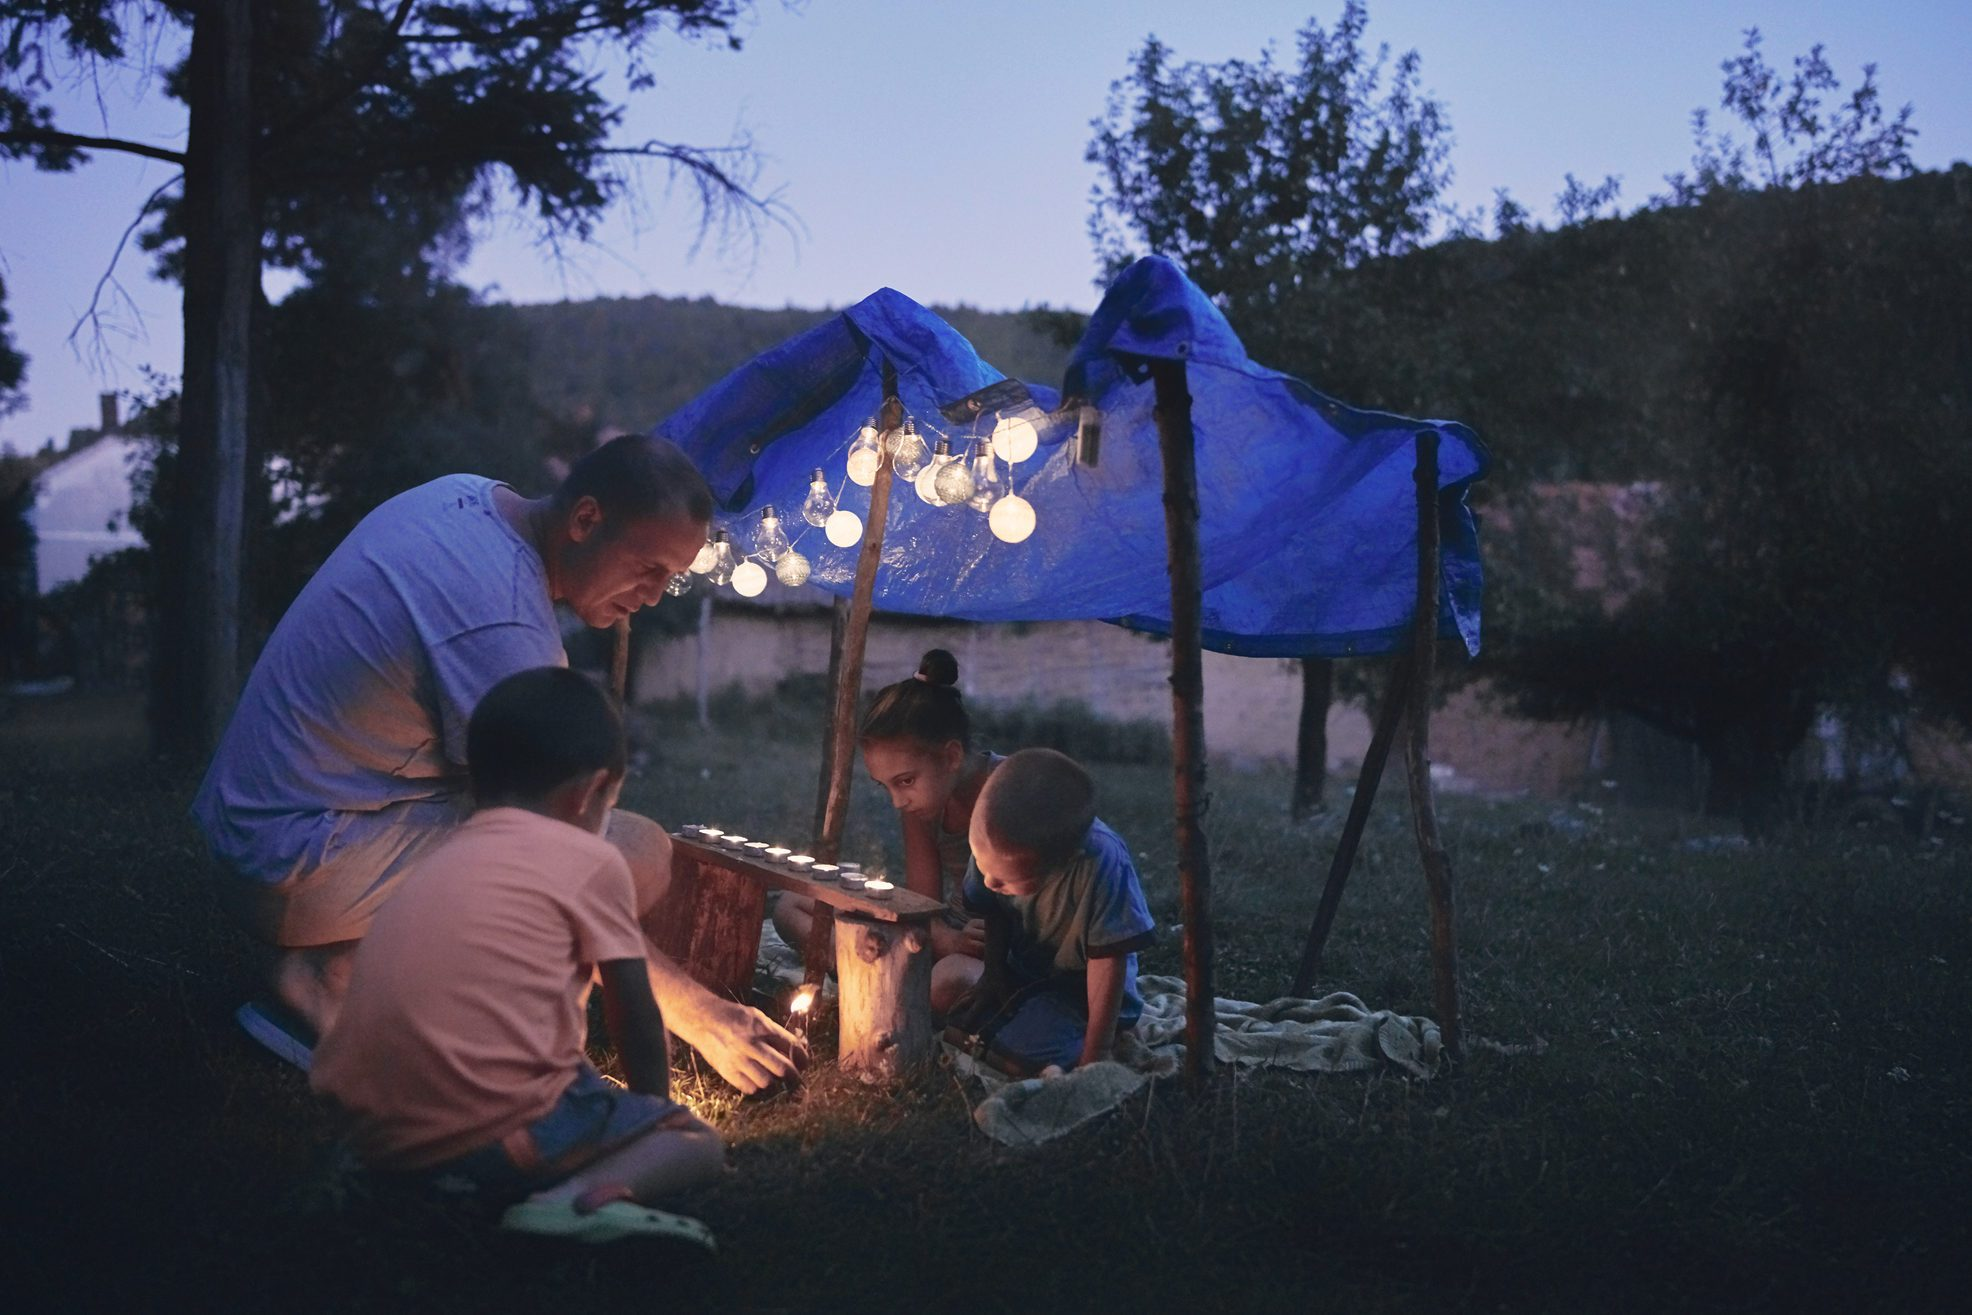 Father with children playing under their backyard tent.